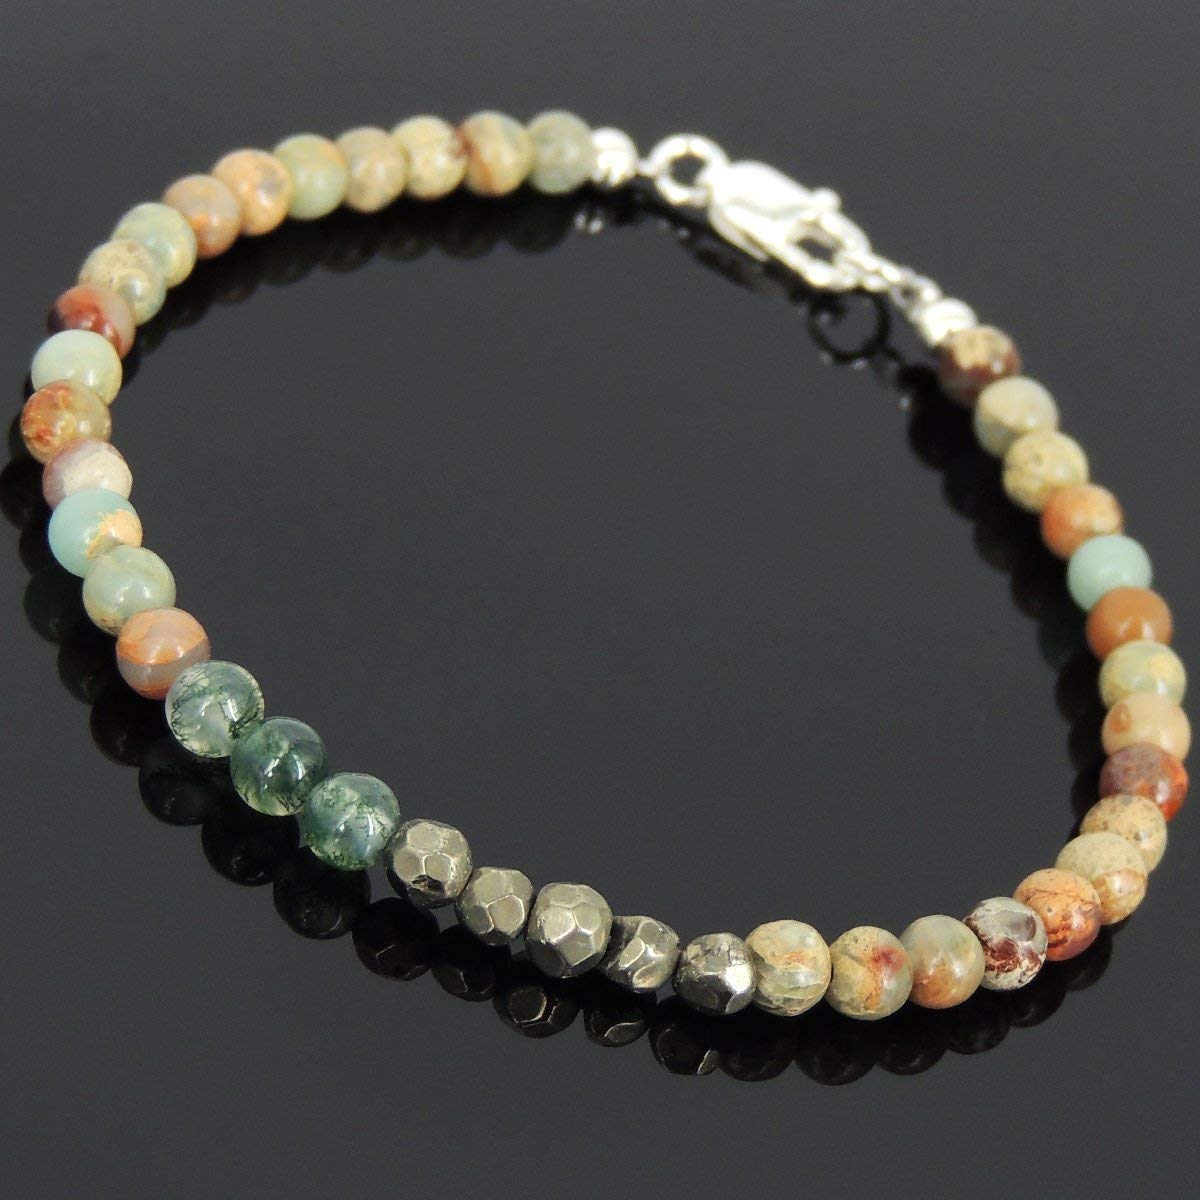 Men and Women Bracelet Handmade with 4mm Natural Jasper Stone, Gold Pyrite, Grass Agate Beads and Genuine 925 Sterling Silver Clasp, Beads